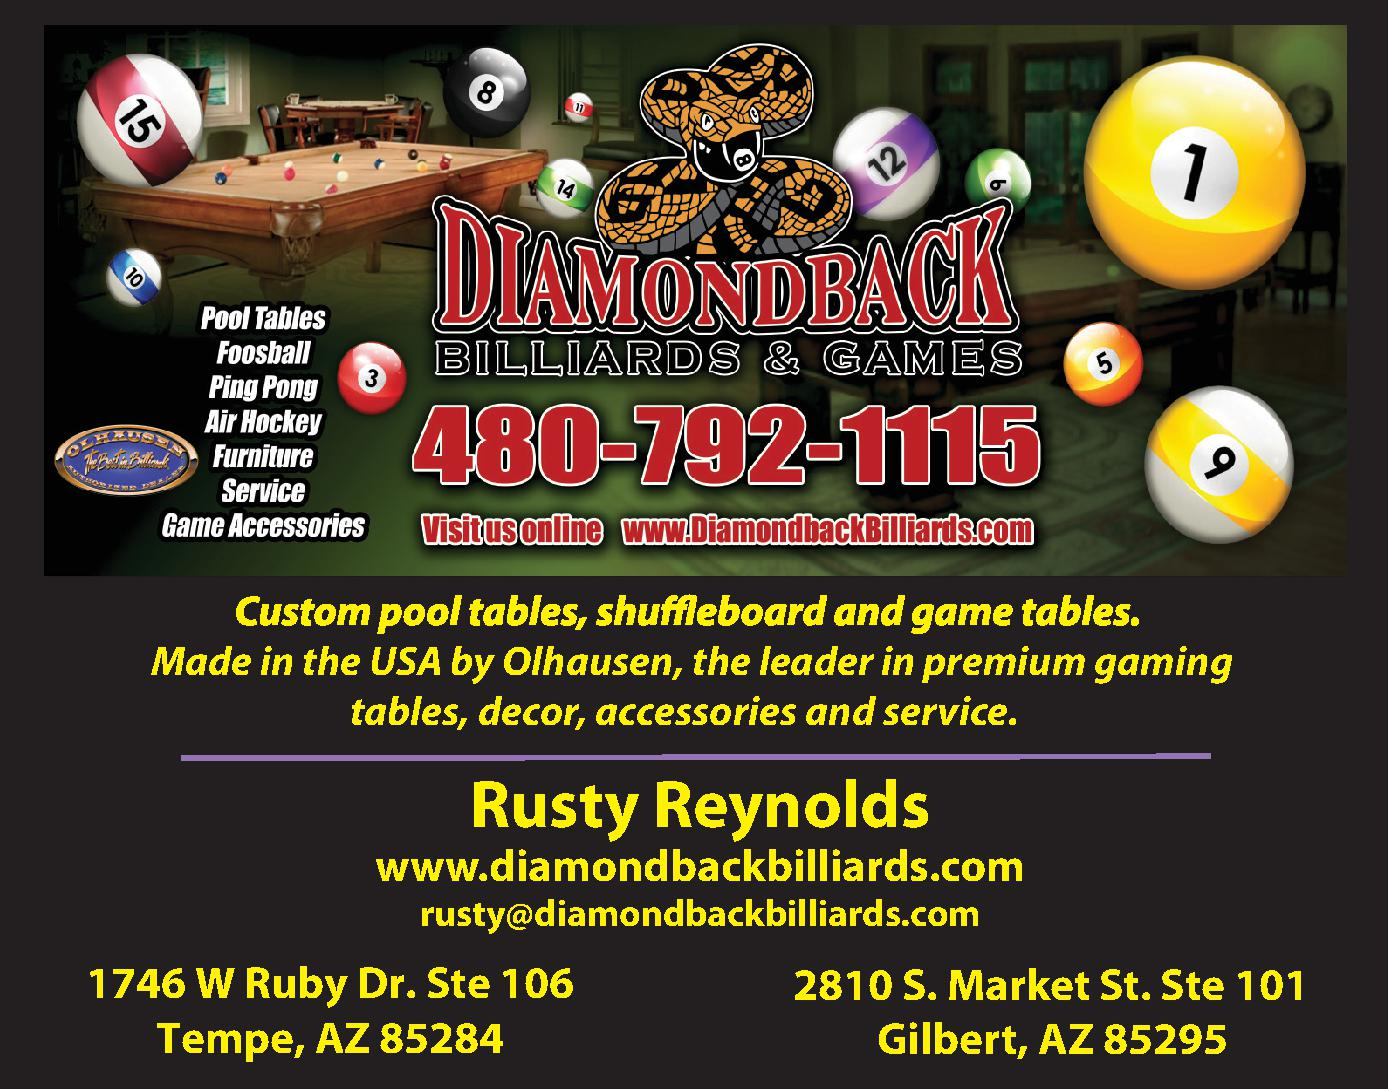 Diamondback Billiards and Games